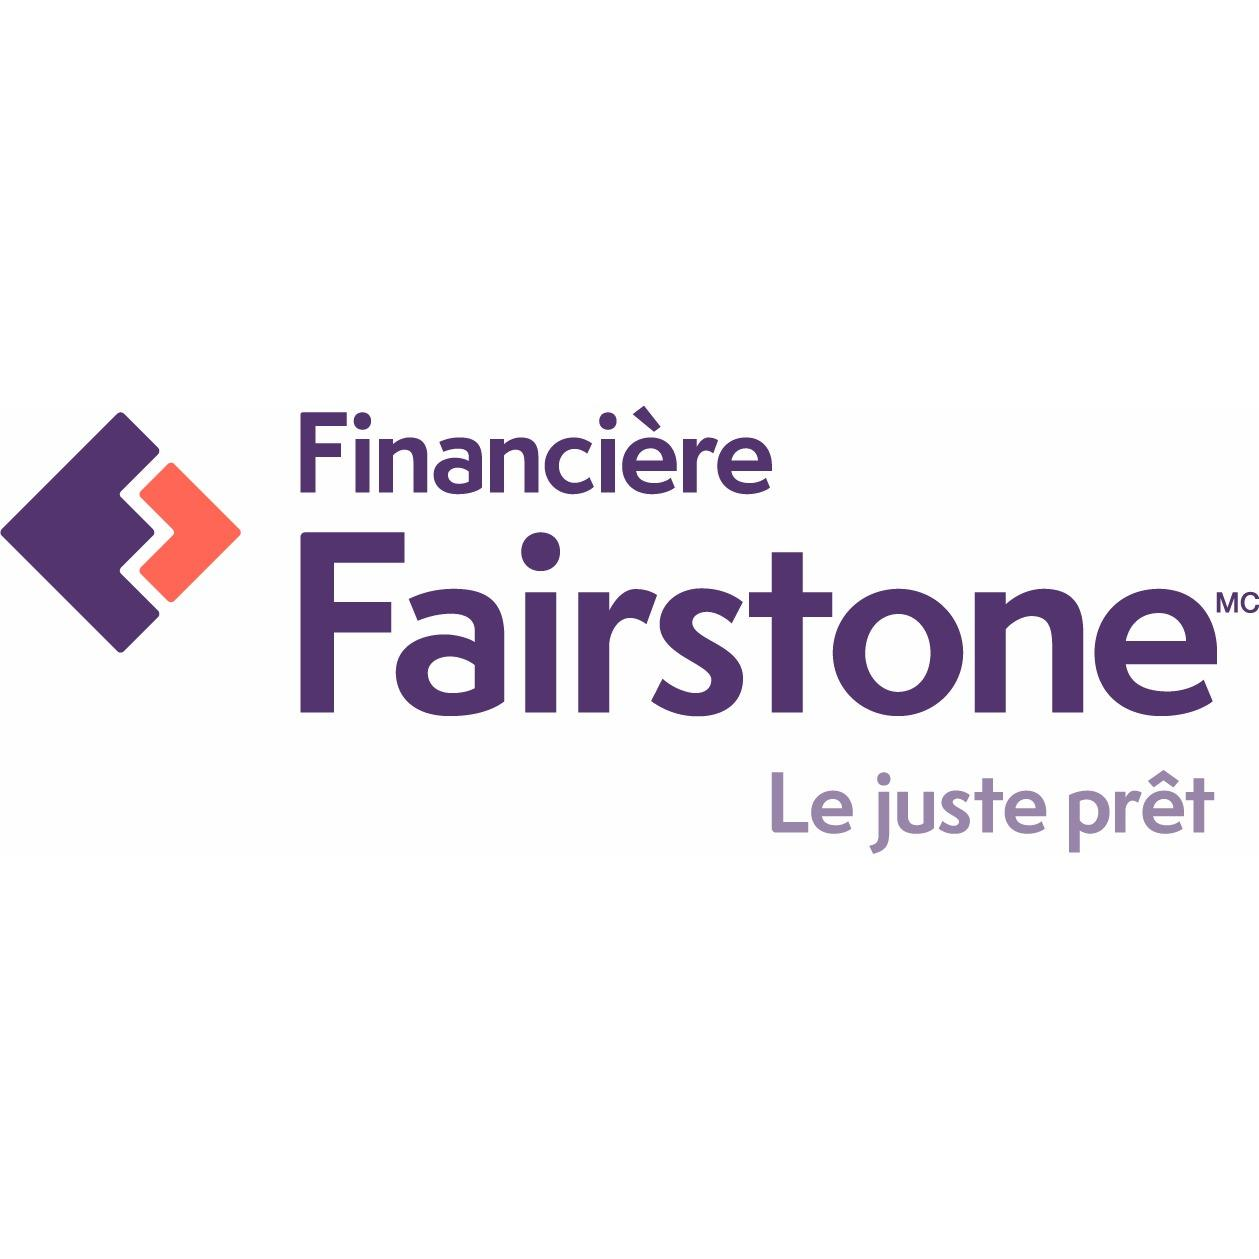 Fairstone, formerly CitiFinancial®